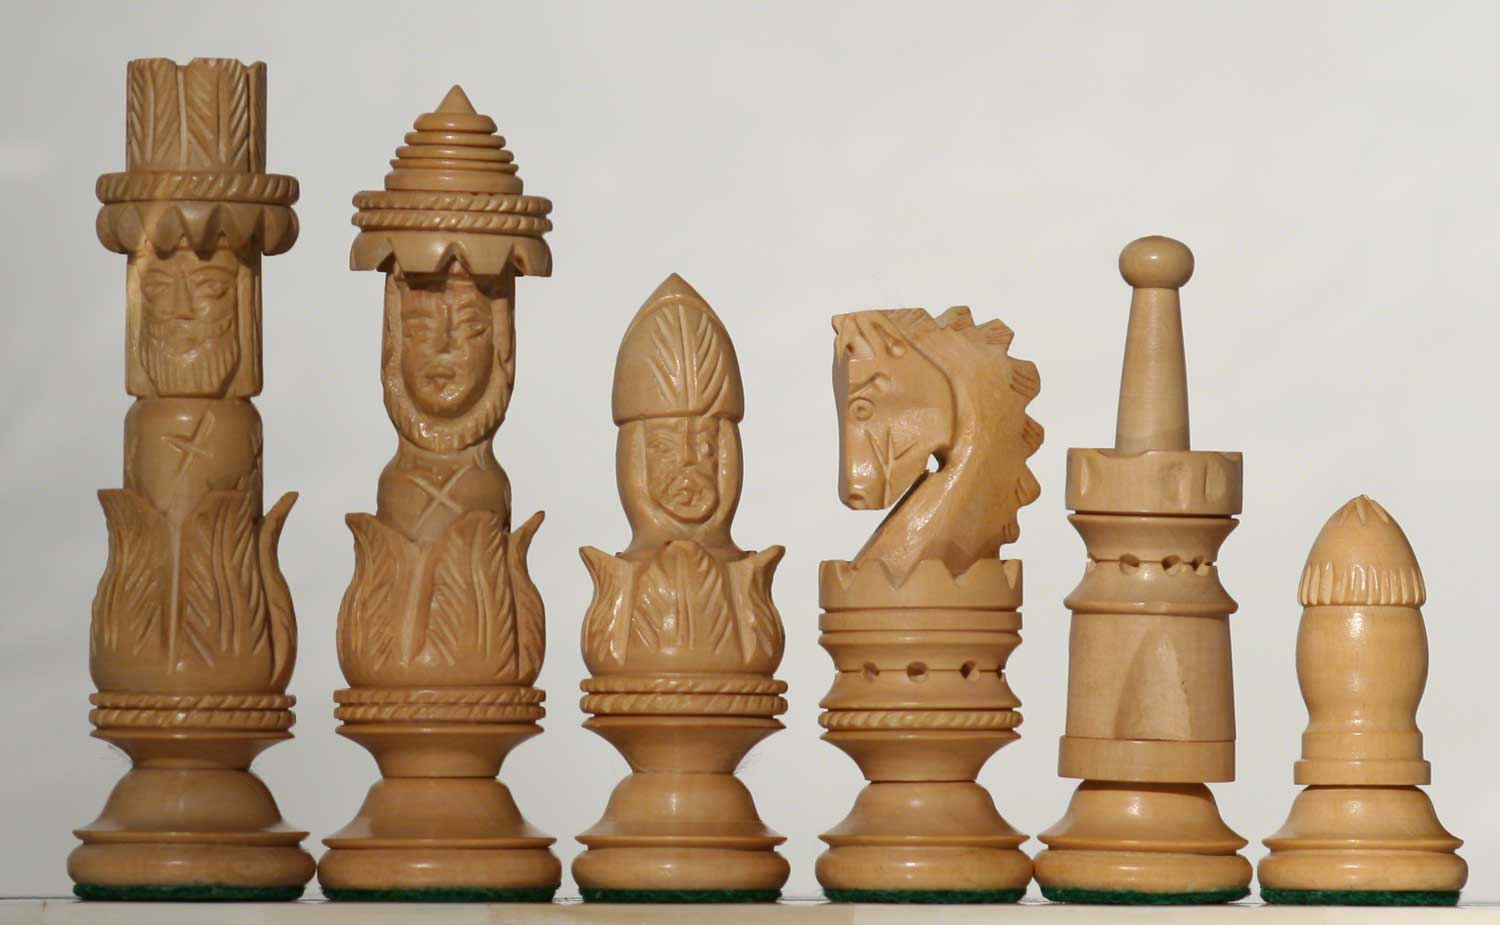 spanish-pulpit-carved-wooden-chess-set-1500-001